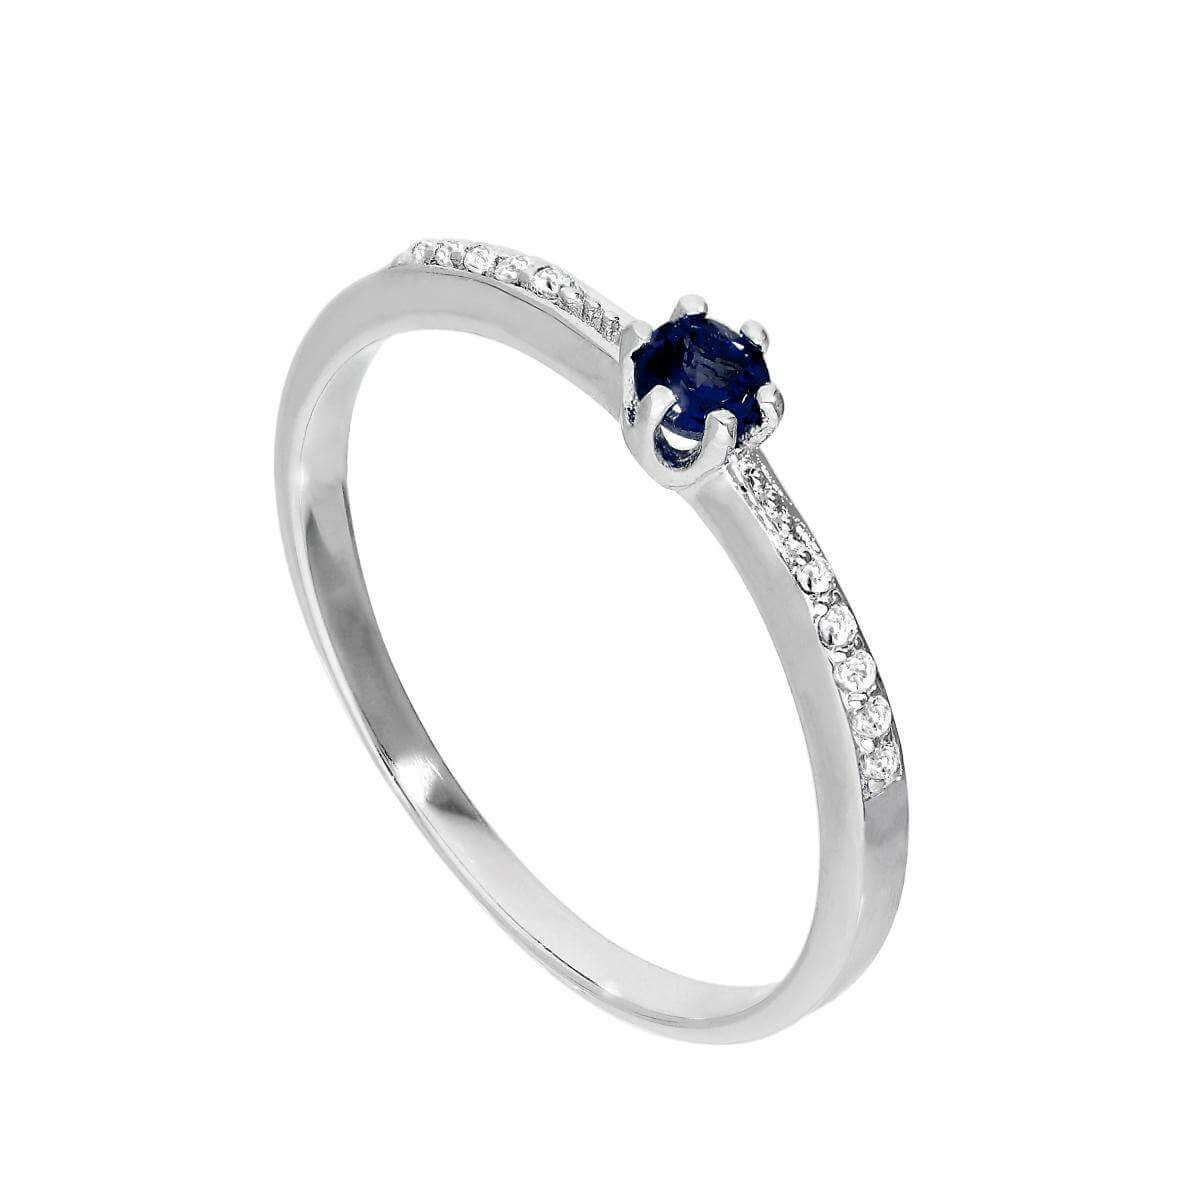 Sterling Silver & Genuine Sapphire Ring w Clear CZ Crystals on Shoulders I - U